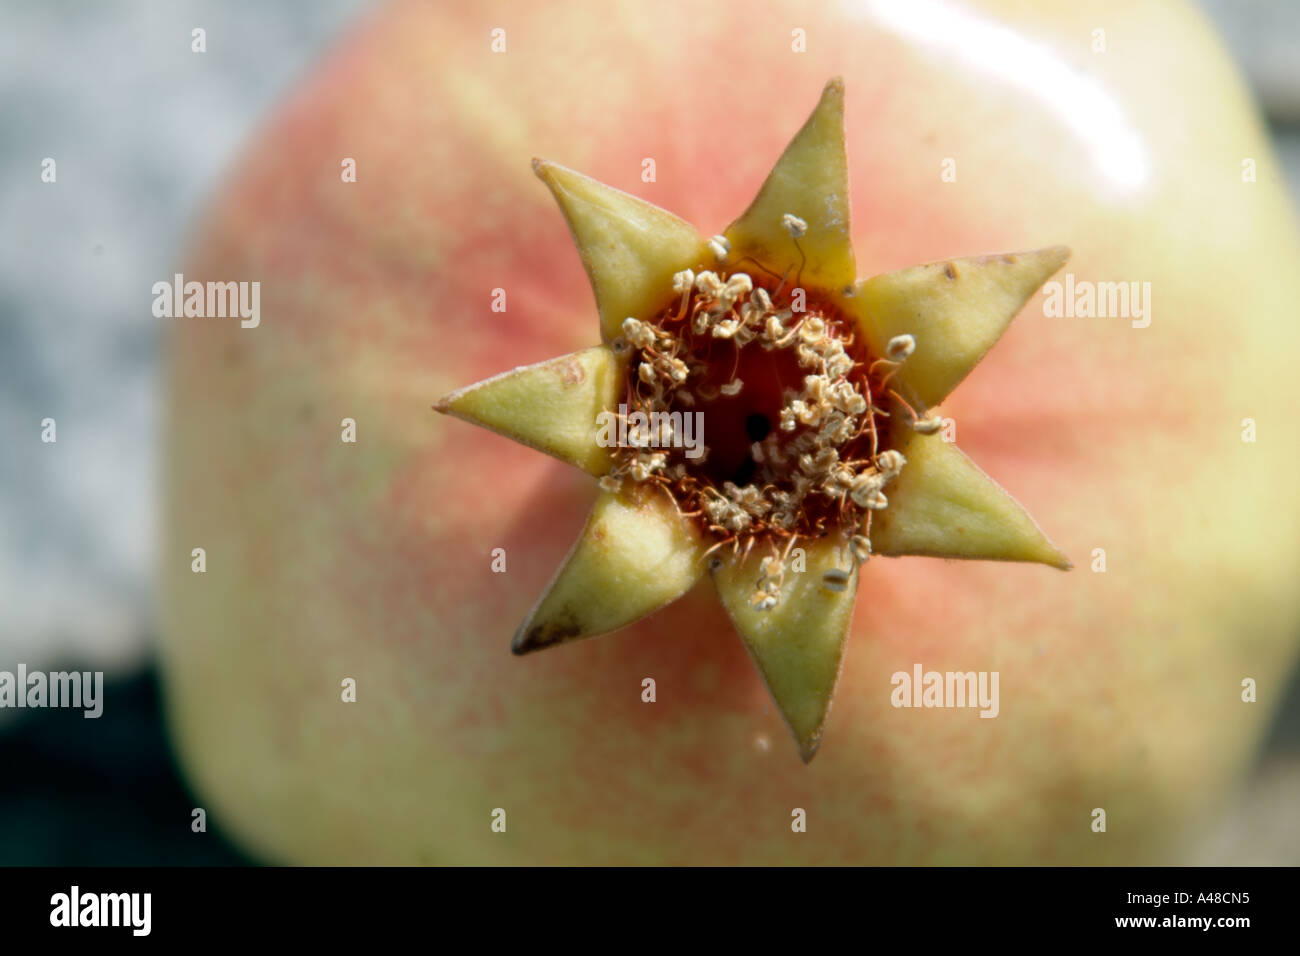 The detail of the crown of a whole pomegranate fruit - Stock Image